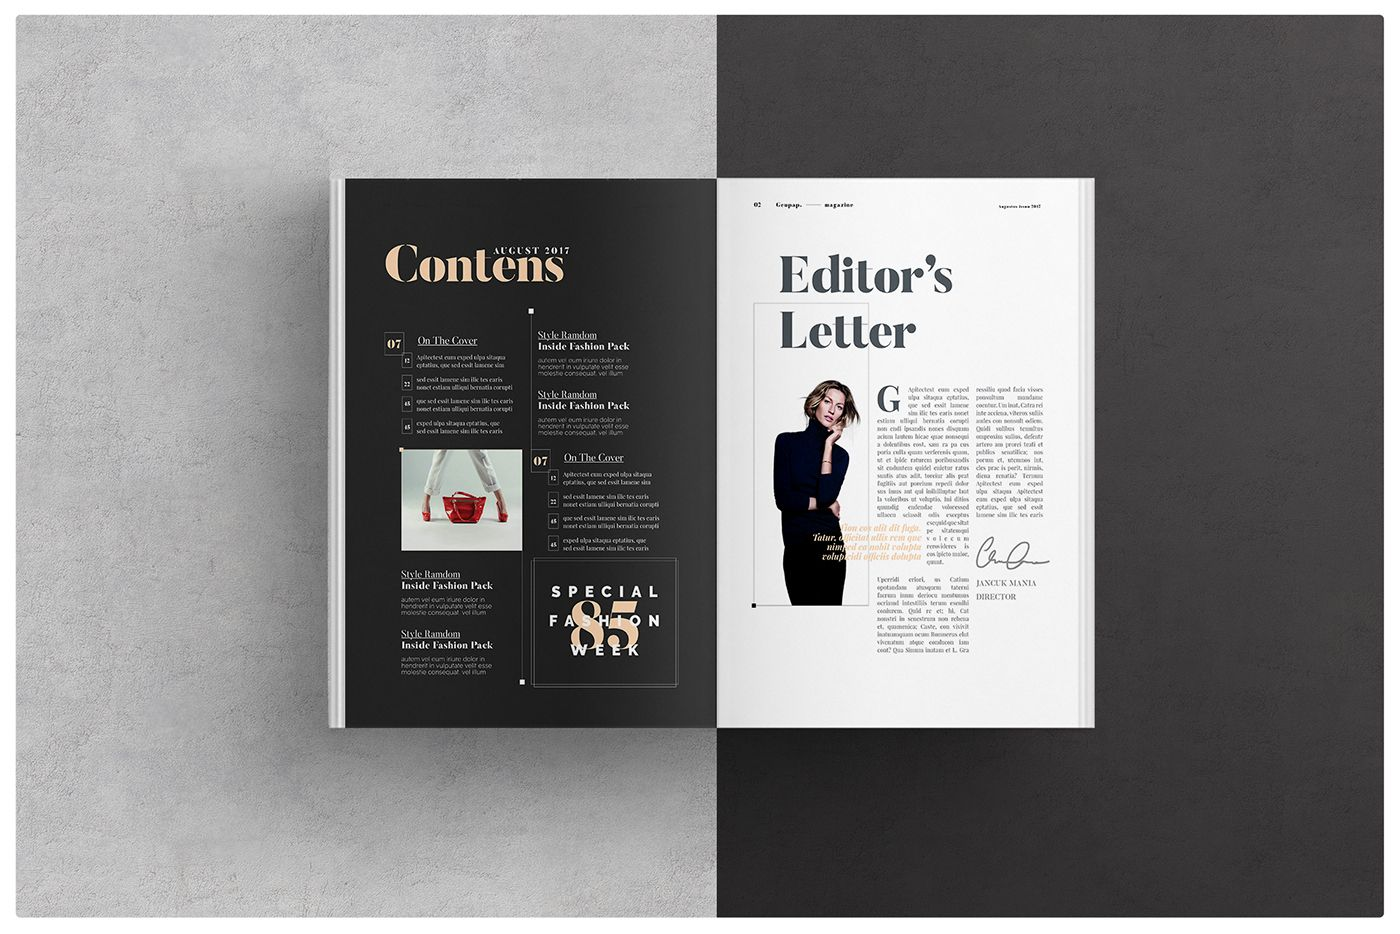 LOOKBOOK TEMPLATE BROCHURE FOLIO MODERN MAGAZINE HIPSTER BOHO PHOTOGRAPHY FASHION PORTFOLIO PUBLICATIONS CLEAN SIMPLISTIC MINIMALIST INDESIGN DESIGN